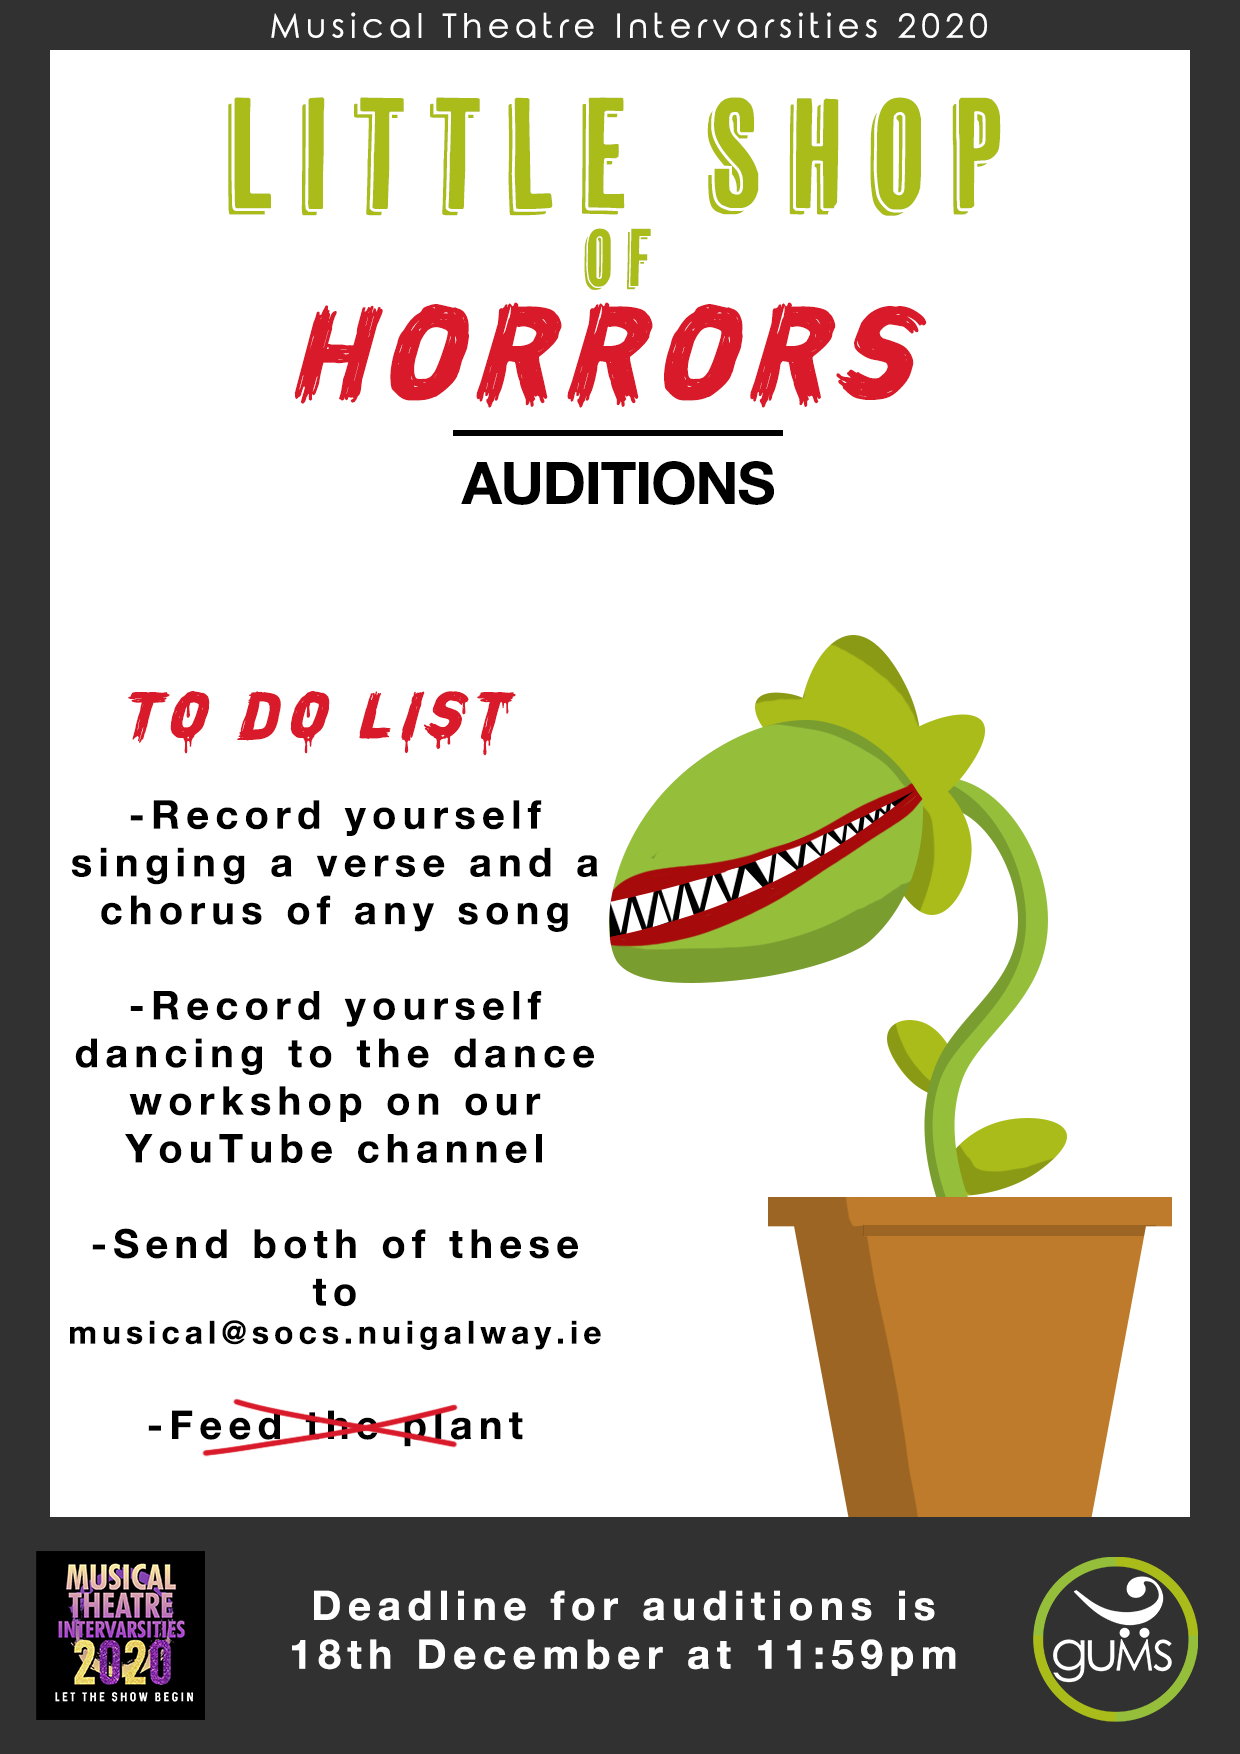 Virtual Inters Auditions